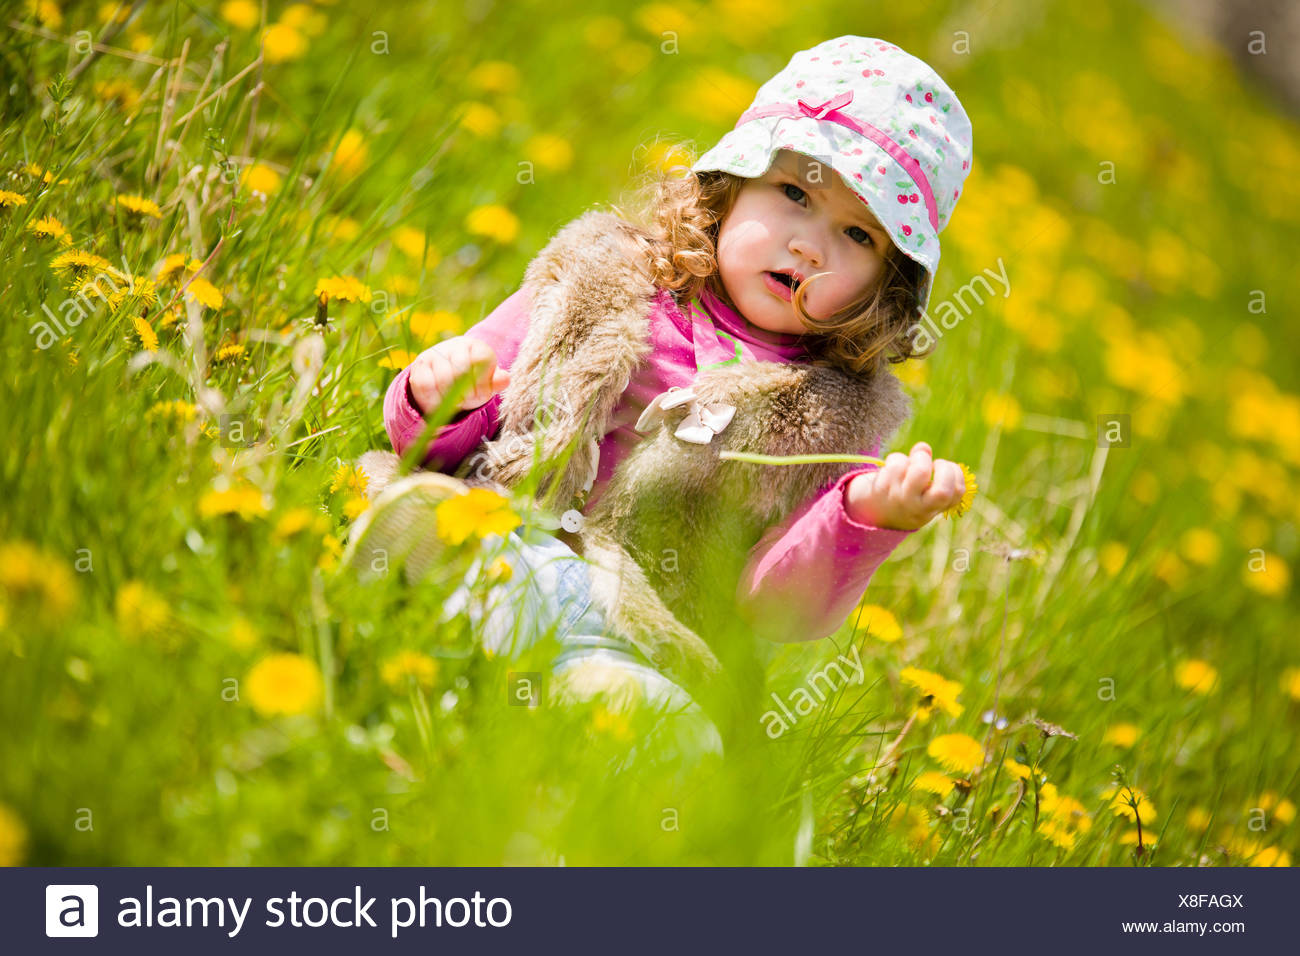 cute baby girl with sun cap on vivid flower meadow full of yellow